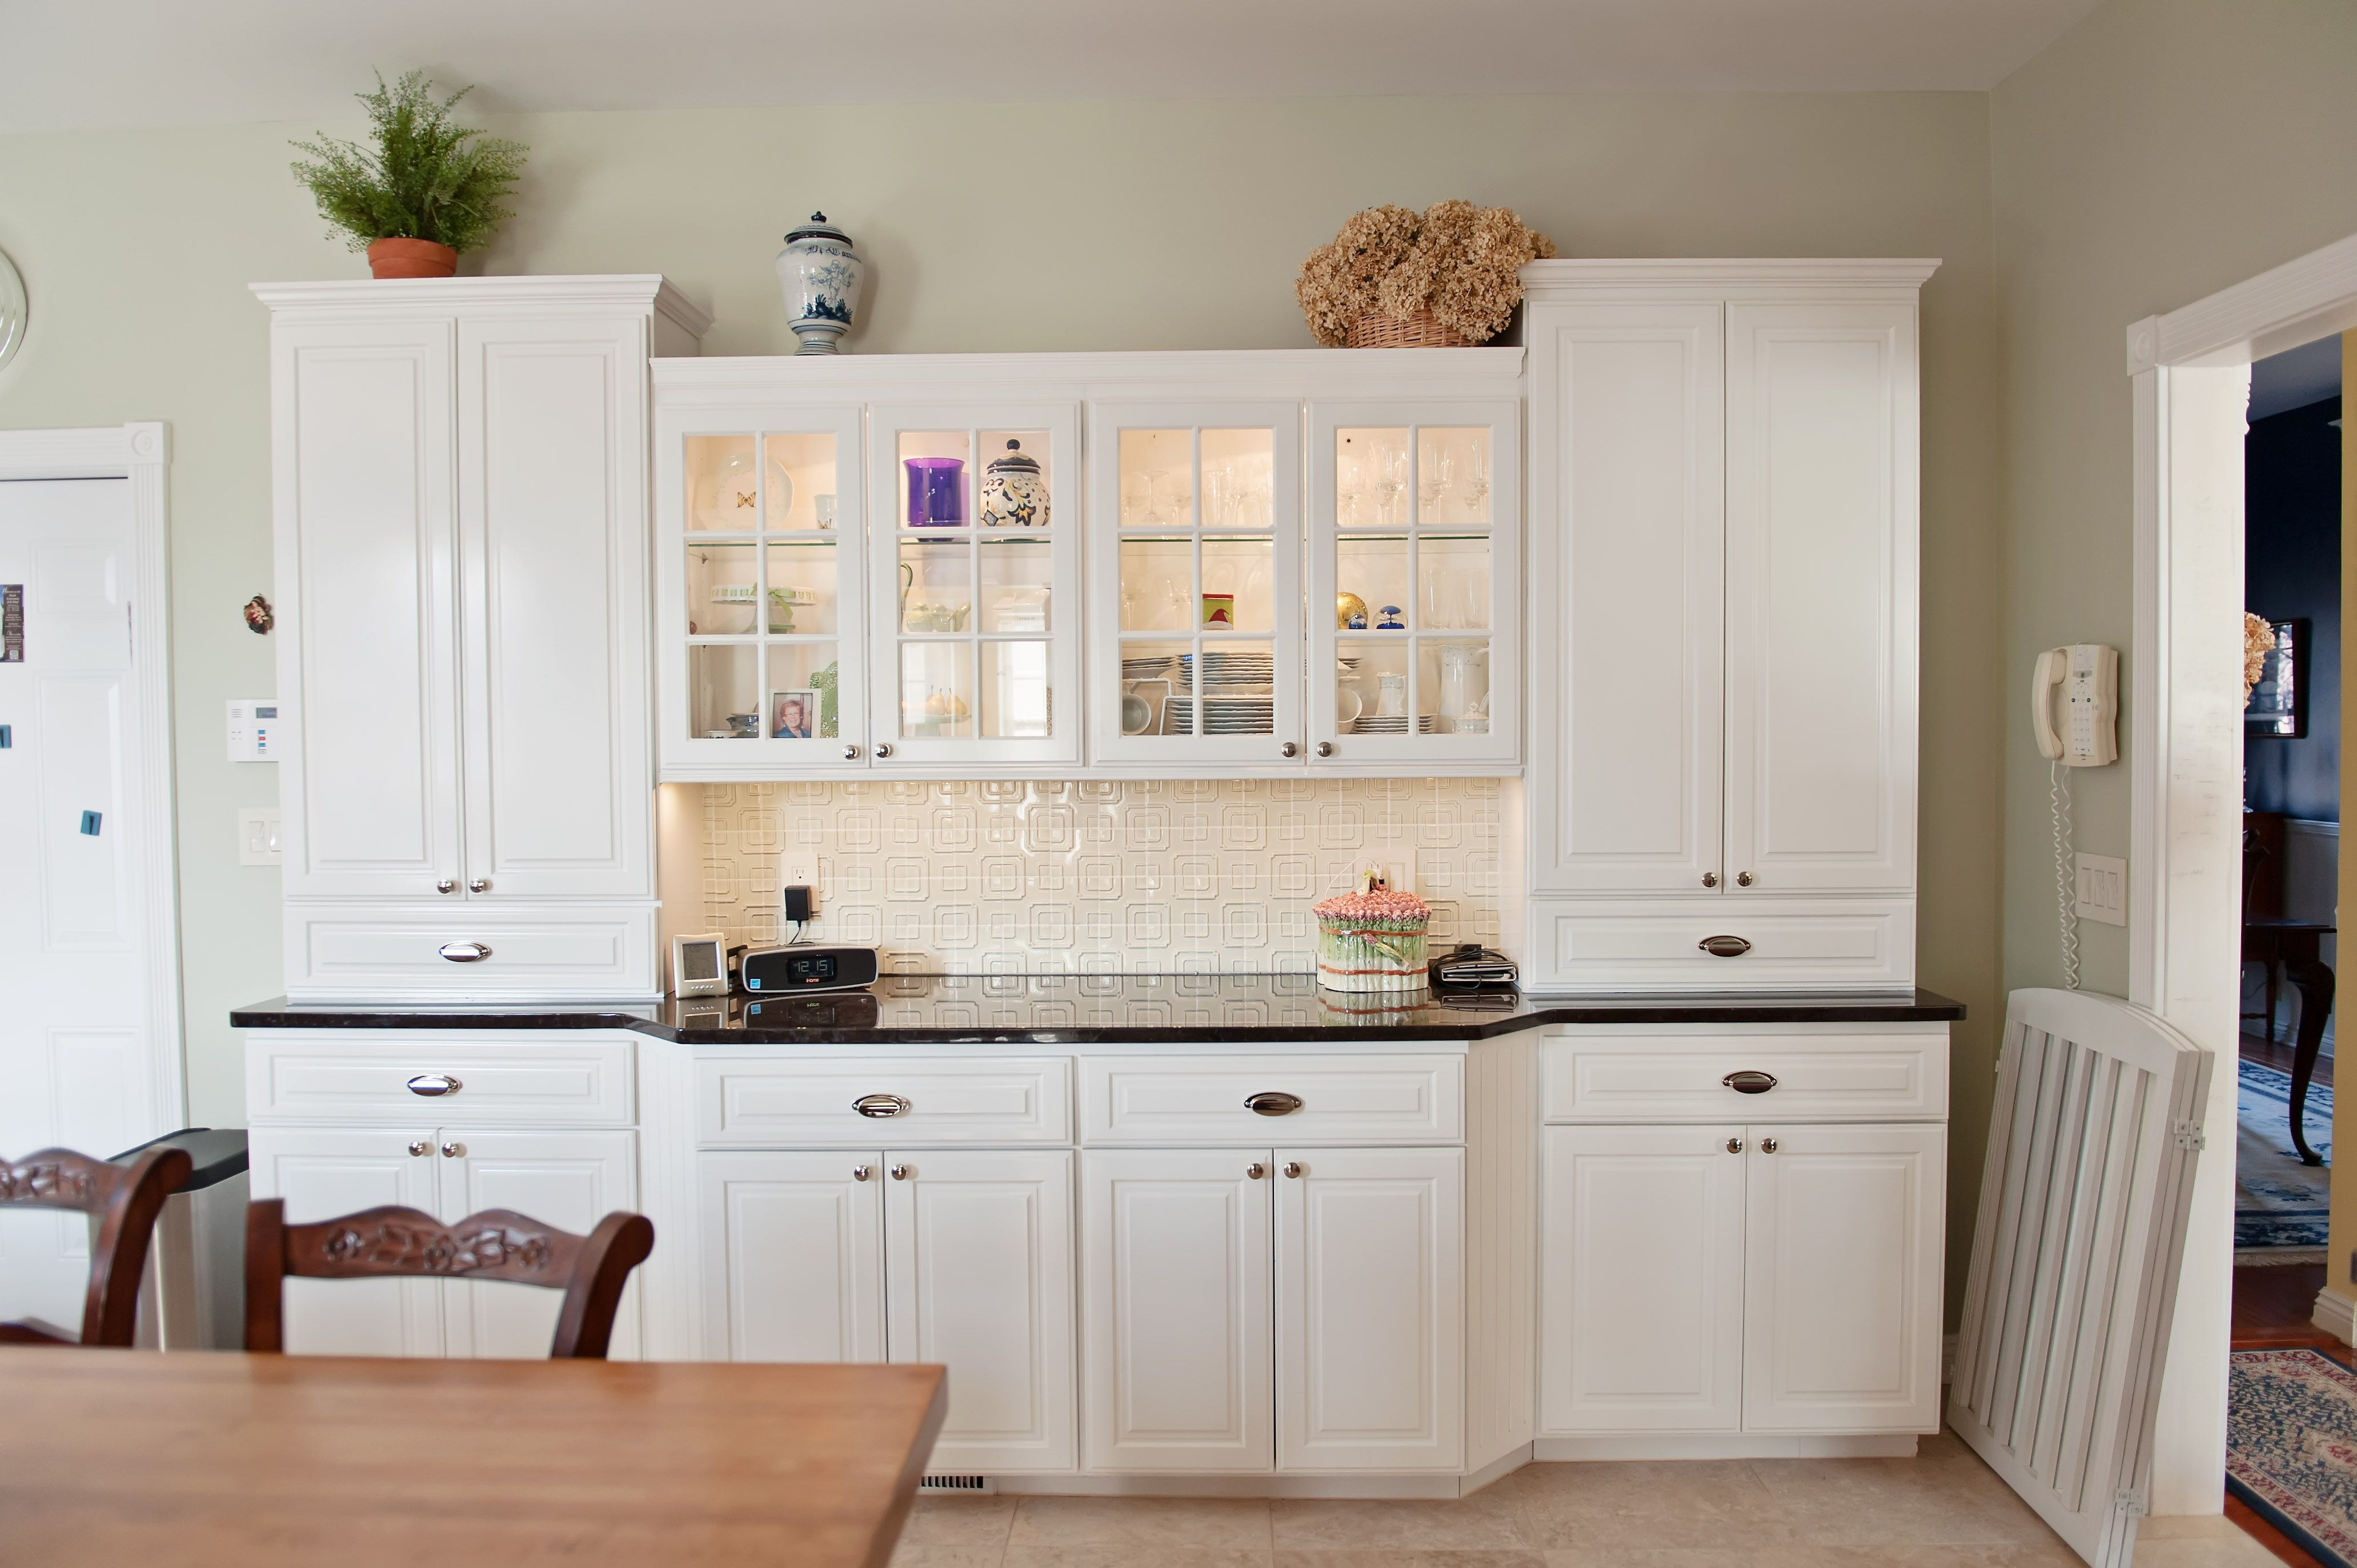 kitchens by reese construction inc lincoln ne reese projects